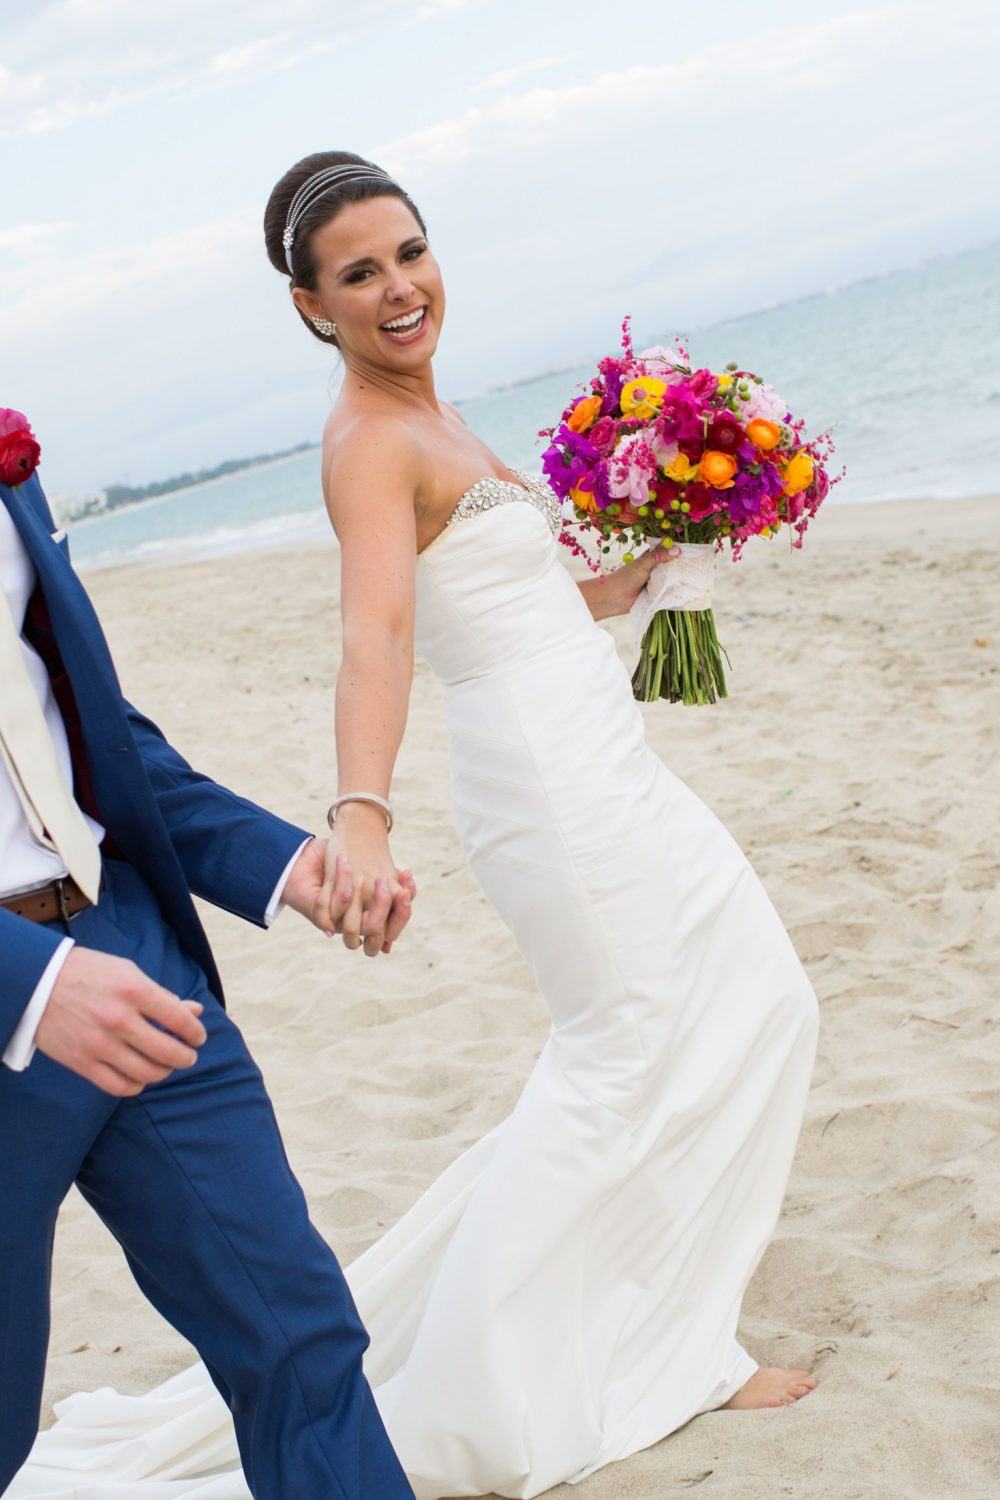 bride and groom walk on beach with colorful bouquet and blue suit at destination wedding in puerto vallarta mexico